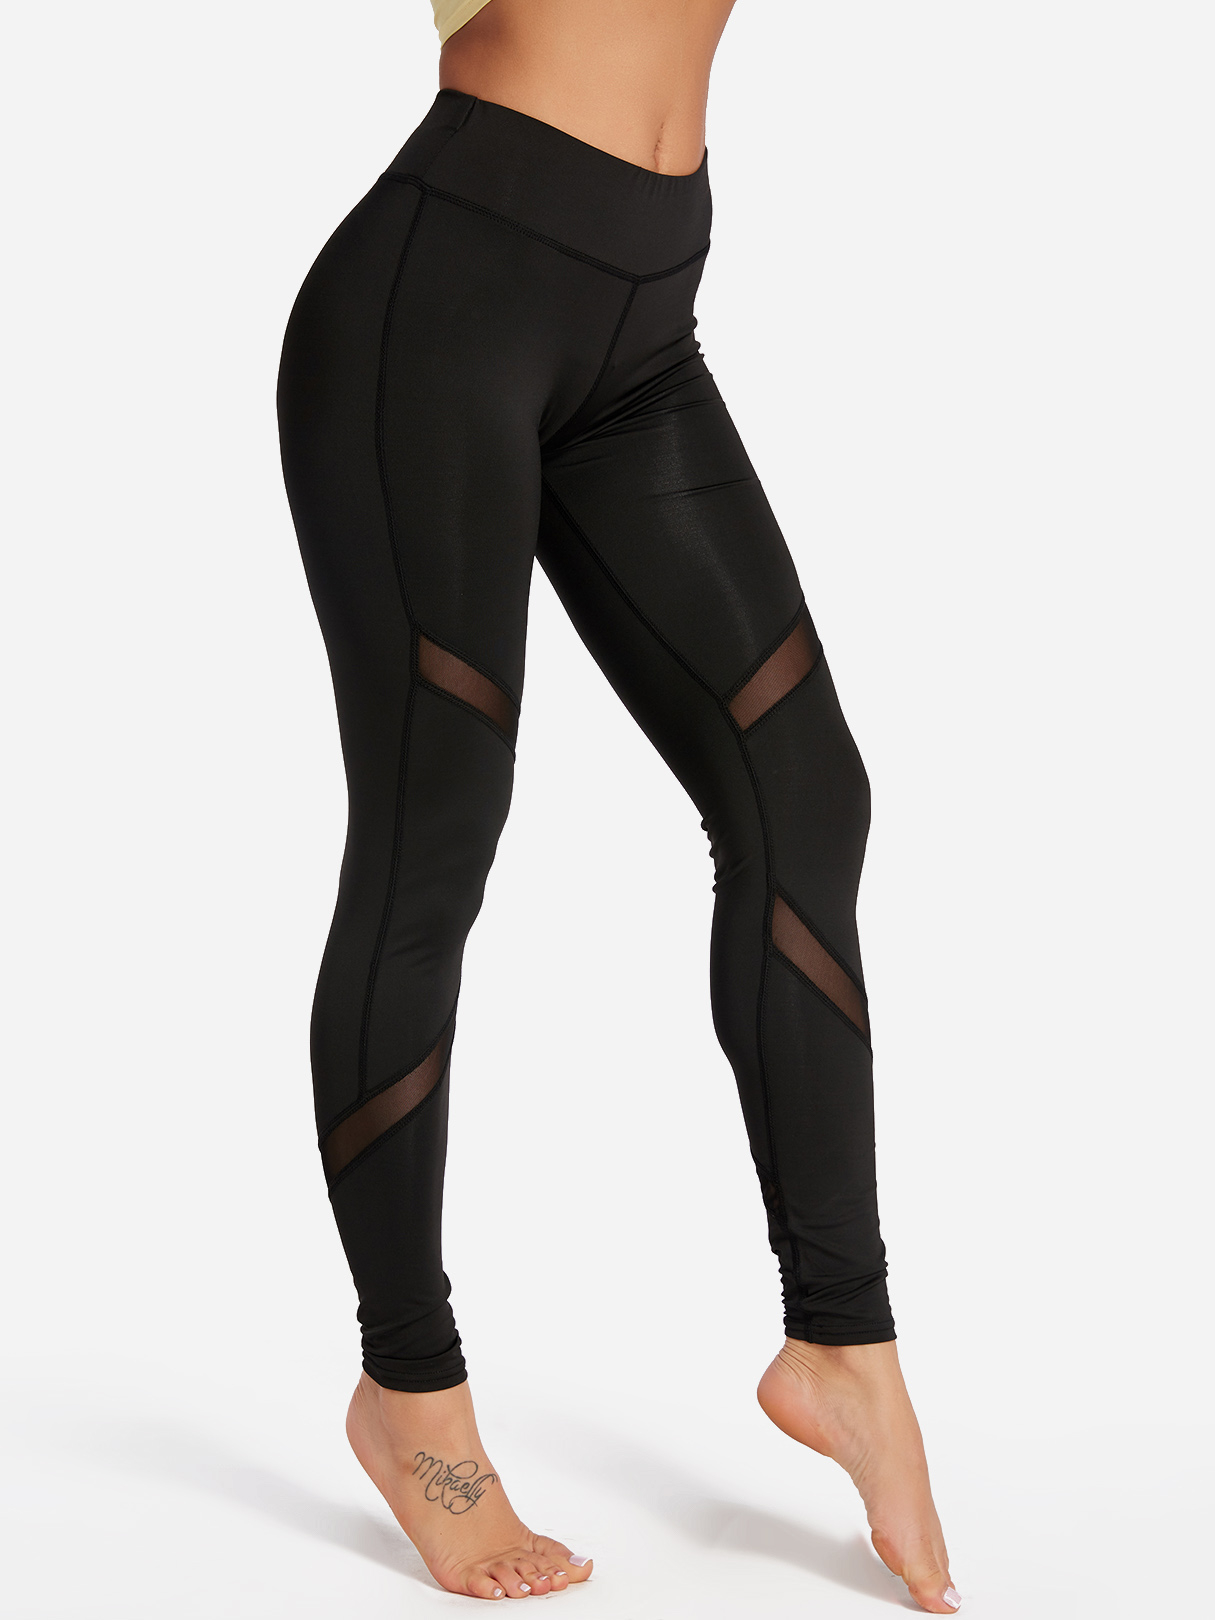 Active Net Yarn Stitching Quick Drying High Waisted Leggings in Black